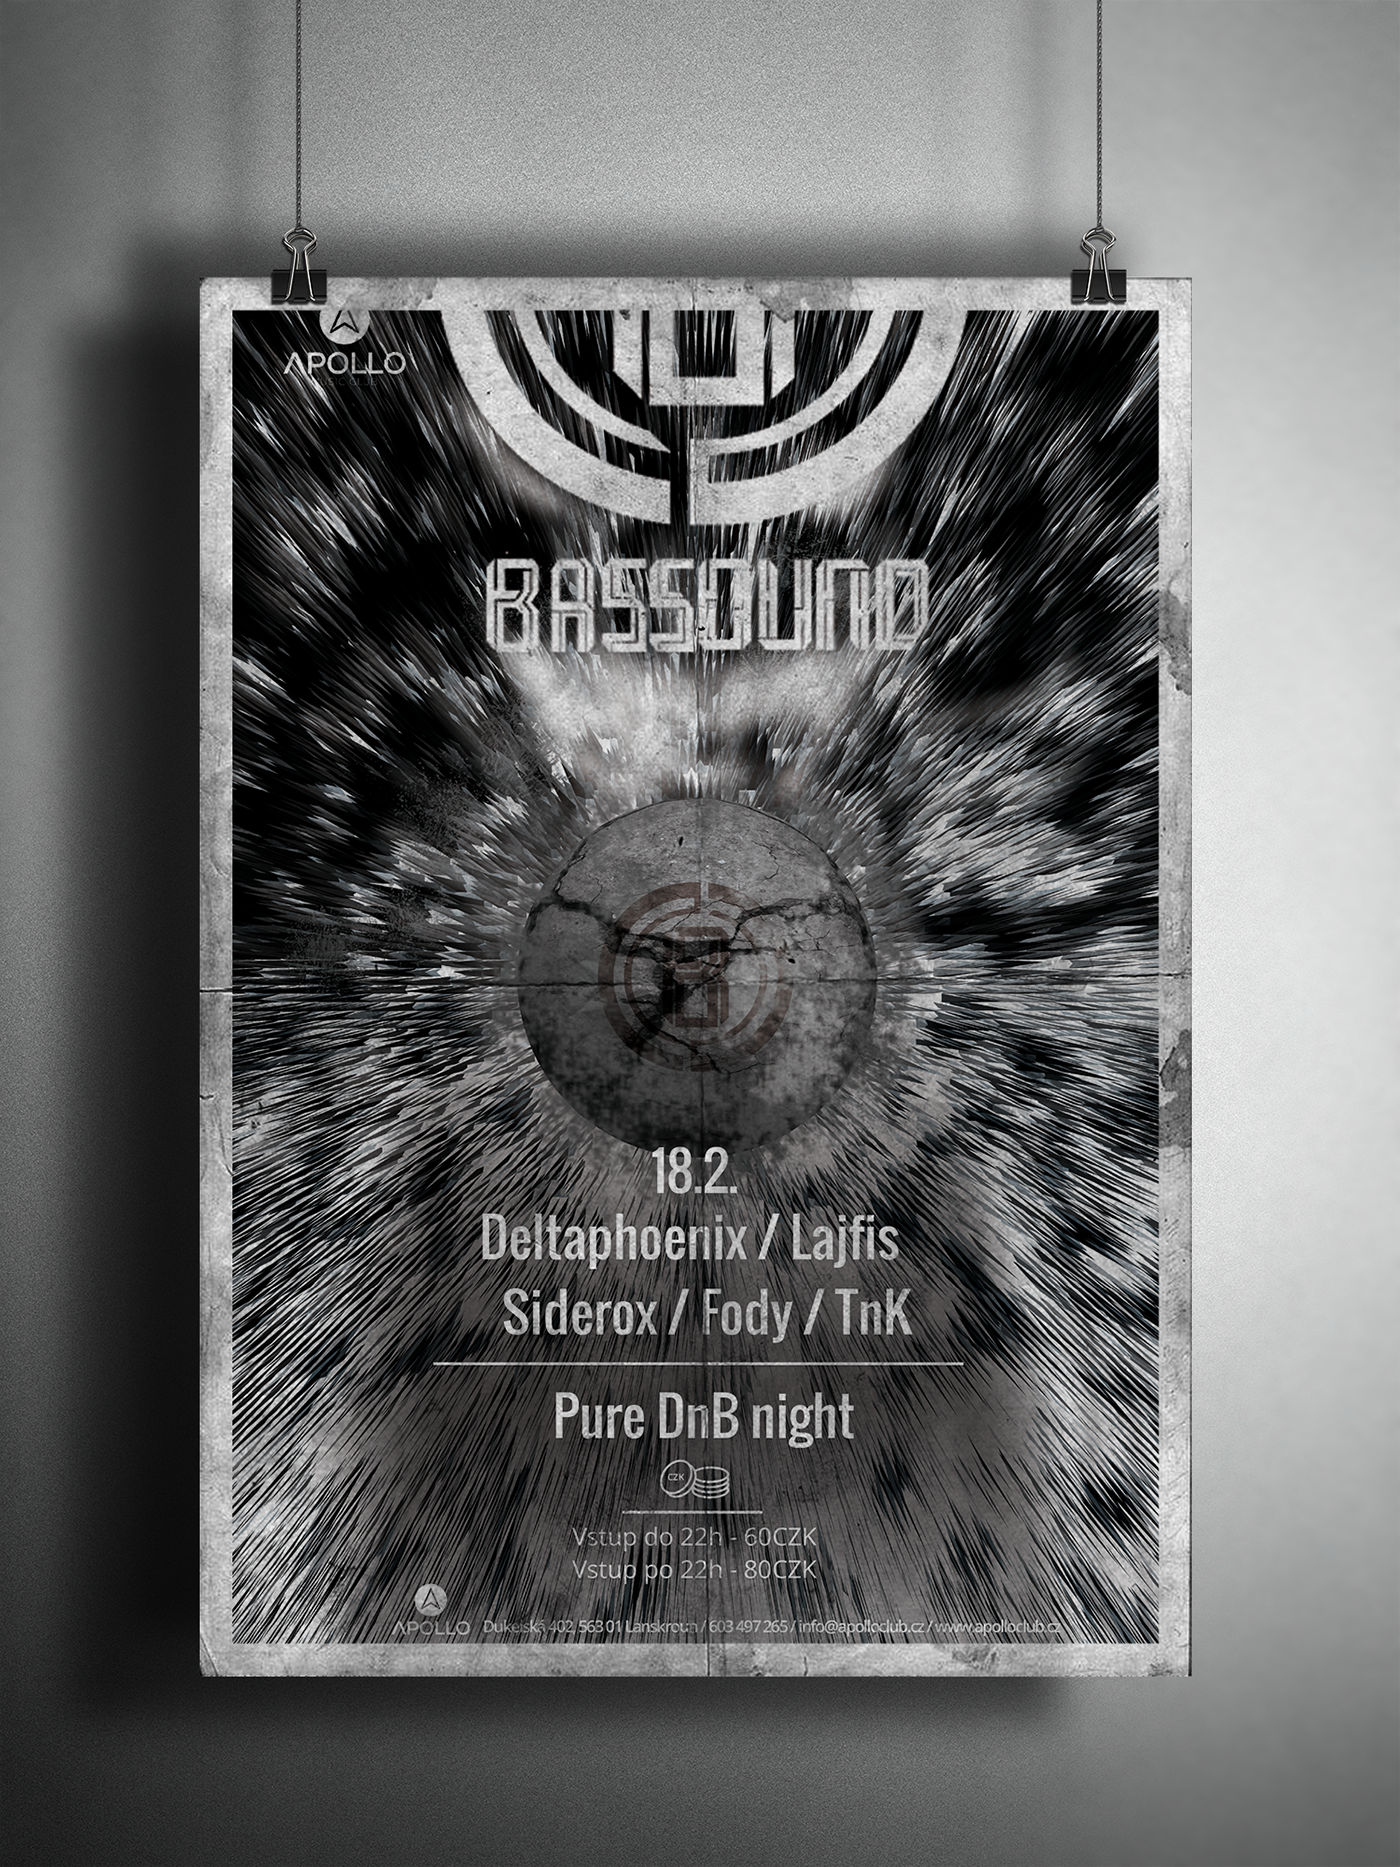 Bassound party Event poster black White